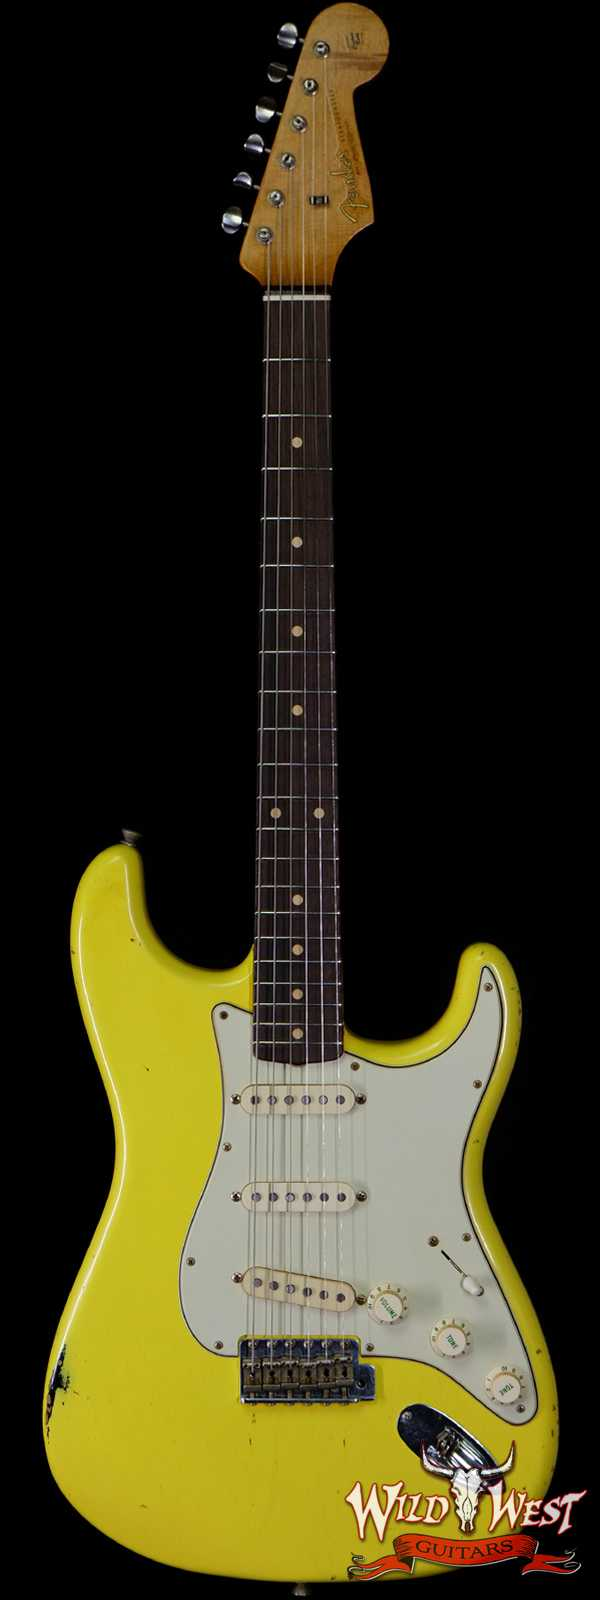 Fender Custom Shop Paul Waller Maserbuilt 1962 Stratocaster Relic Hand-Wound Pickups Rosewood Slab Board Graffiti Yellow over Black